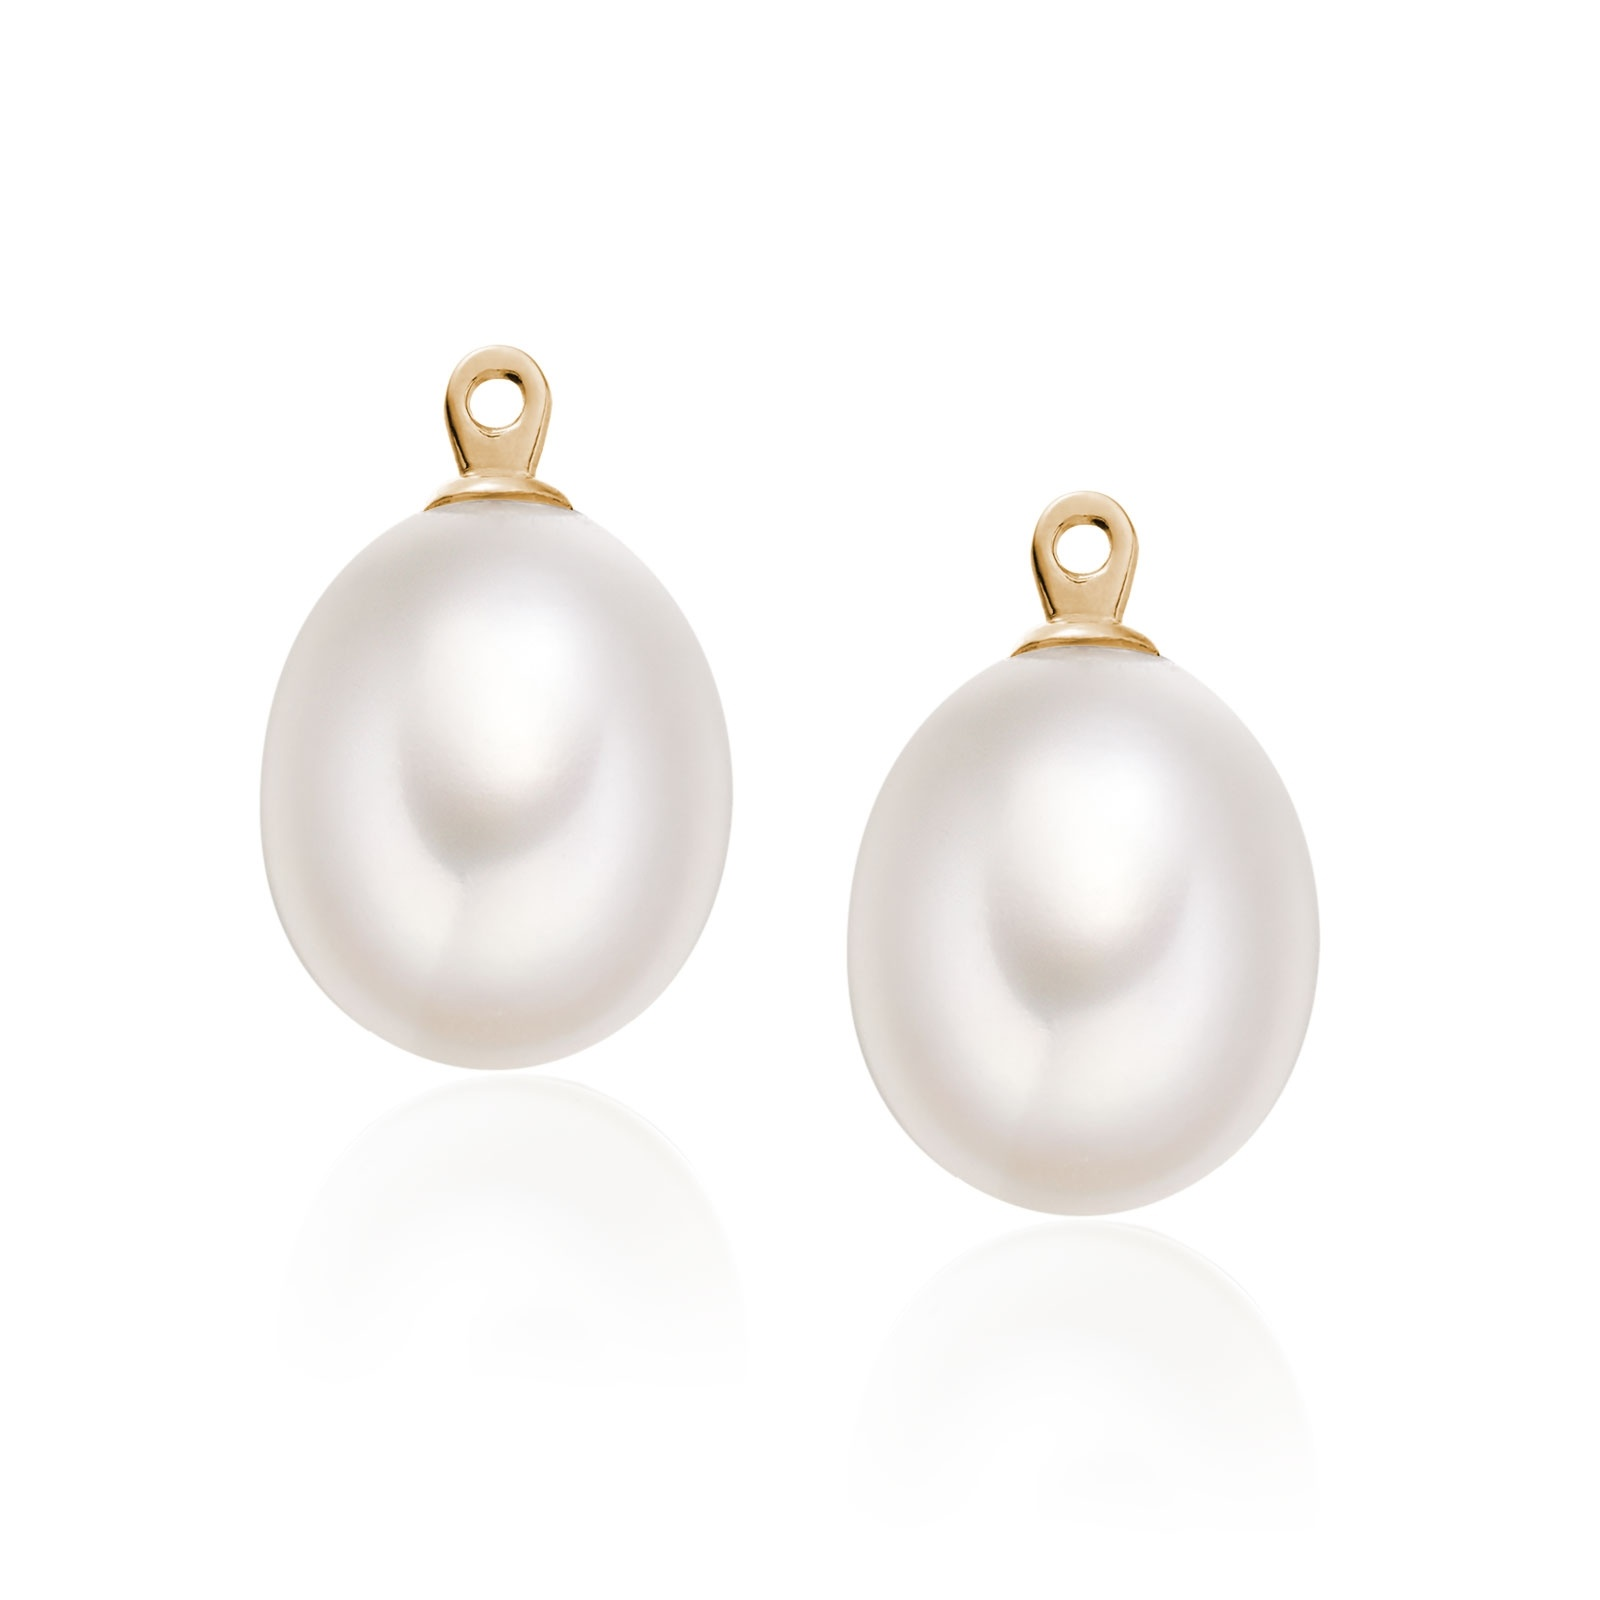 White Freshwater Drop Pearls for Rose Gold Stud Earrings-FEWDRG1314-1